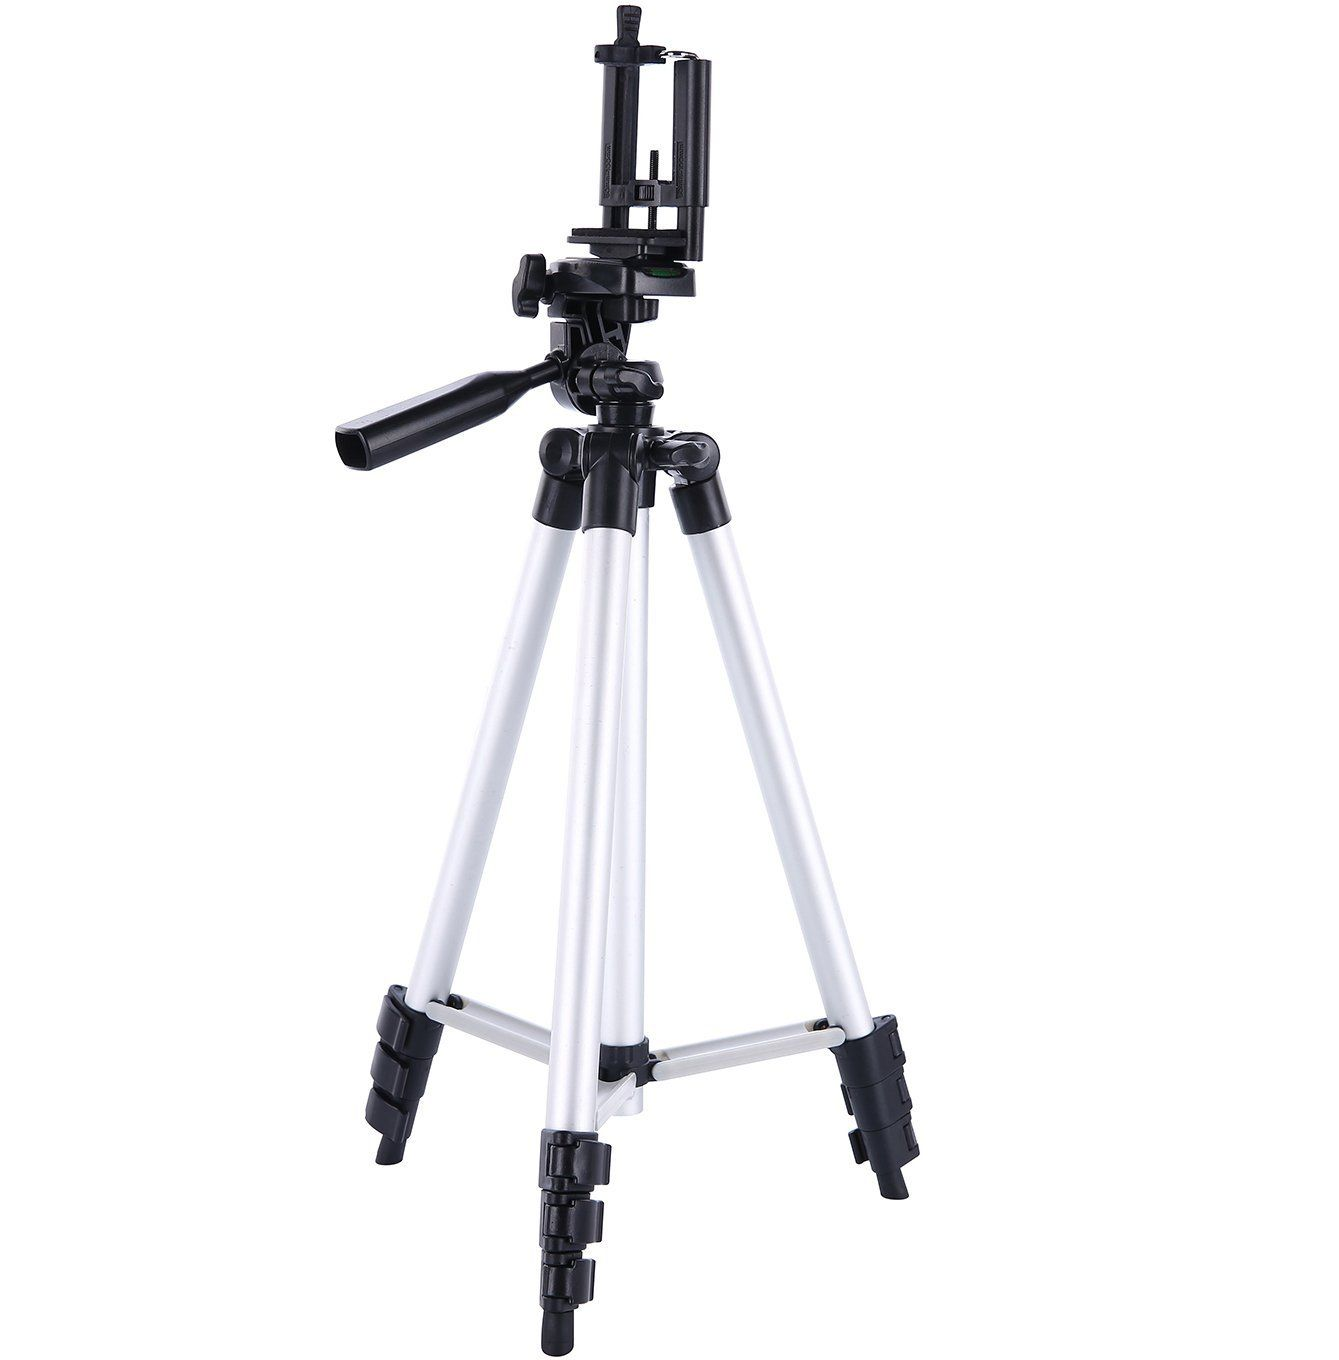 Amazon.com: Digiant 50 Inch Aluminum Camera Tripod + Universal Tripod Smartphone Mount for Apple, Iphone Samsung and Other Brands Smartphones: Cell Phones & Accessories